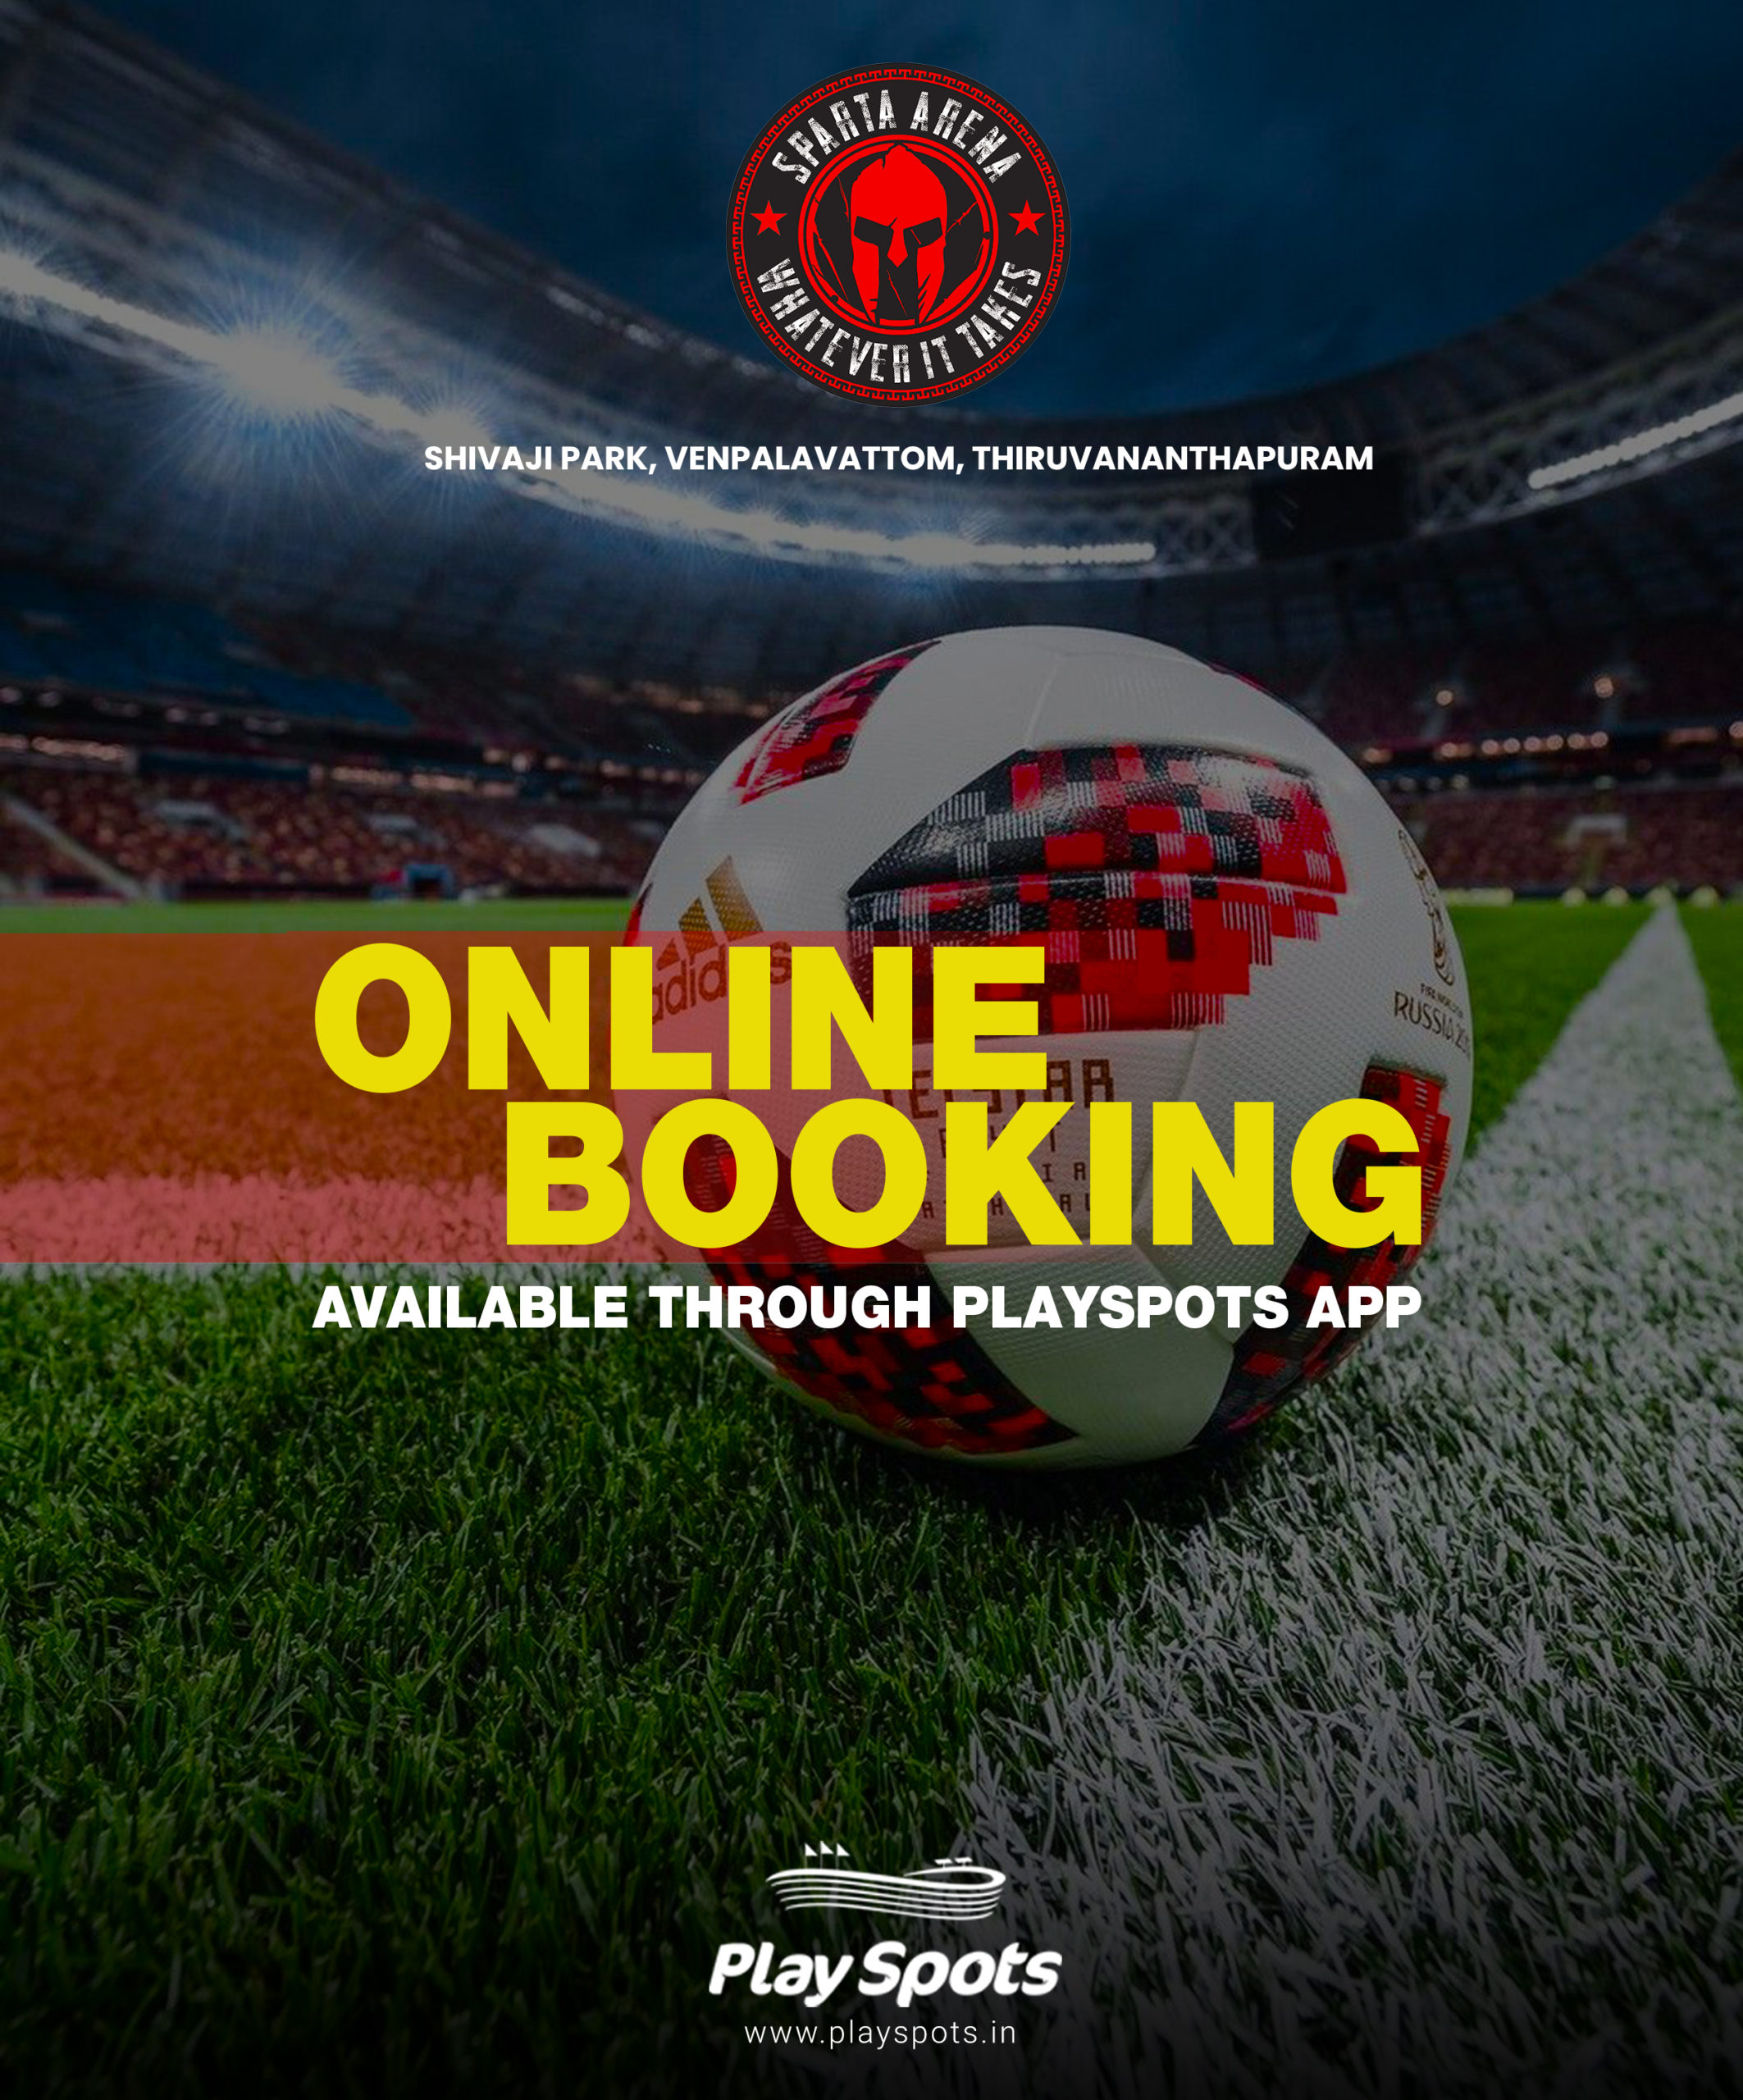 sparta online booking available through playspots   football turf booking application